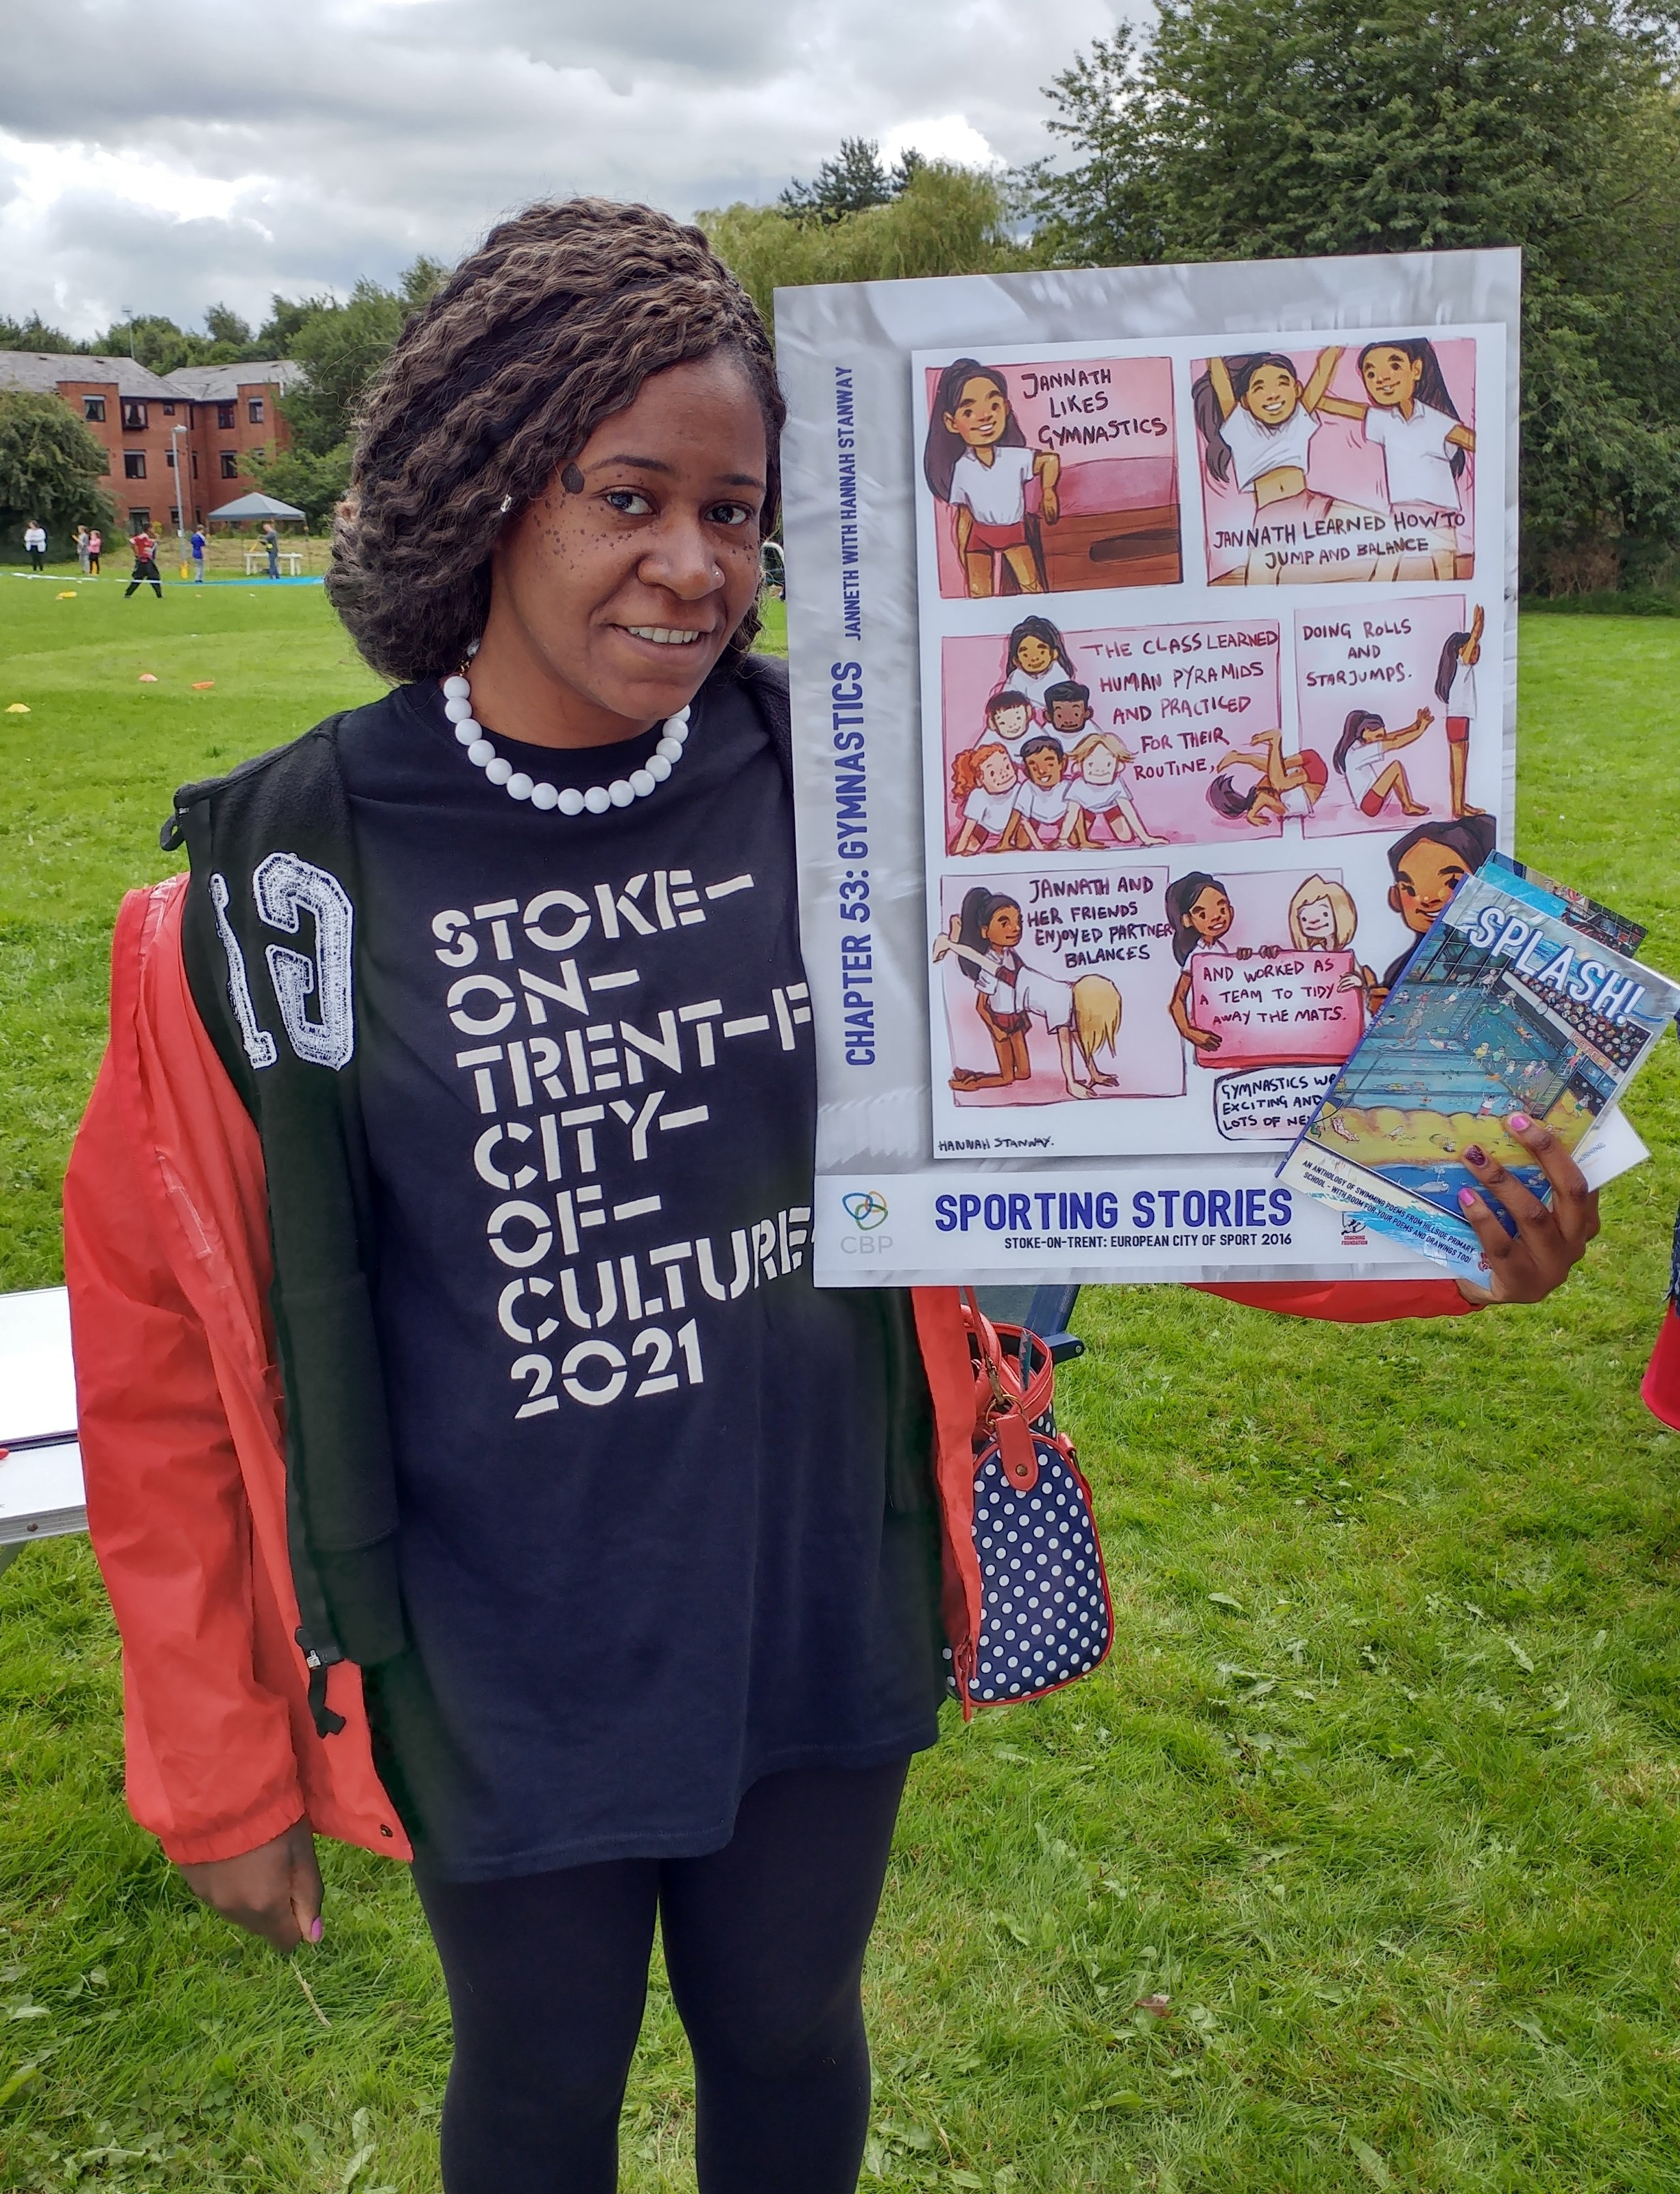 And another star turn - local poet Gabriella Gay showing off our favourite artwork and promoting Stoke-on-Trent's cultural identity and the SoT2021 City of Culture bid #sport #poetry #artwork